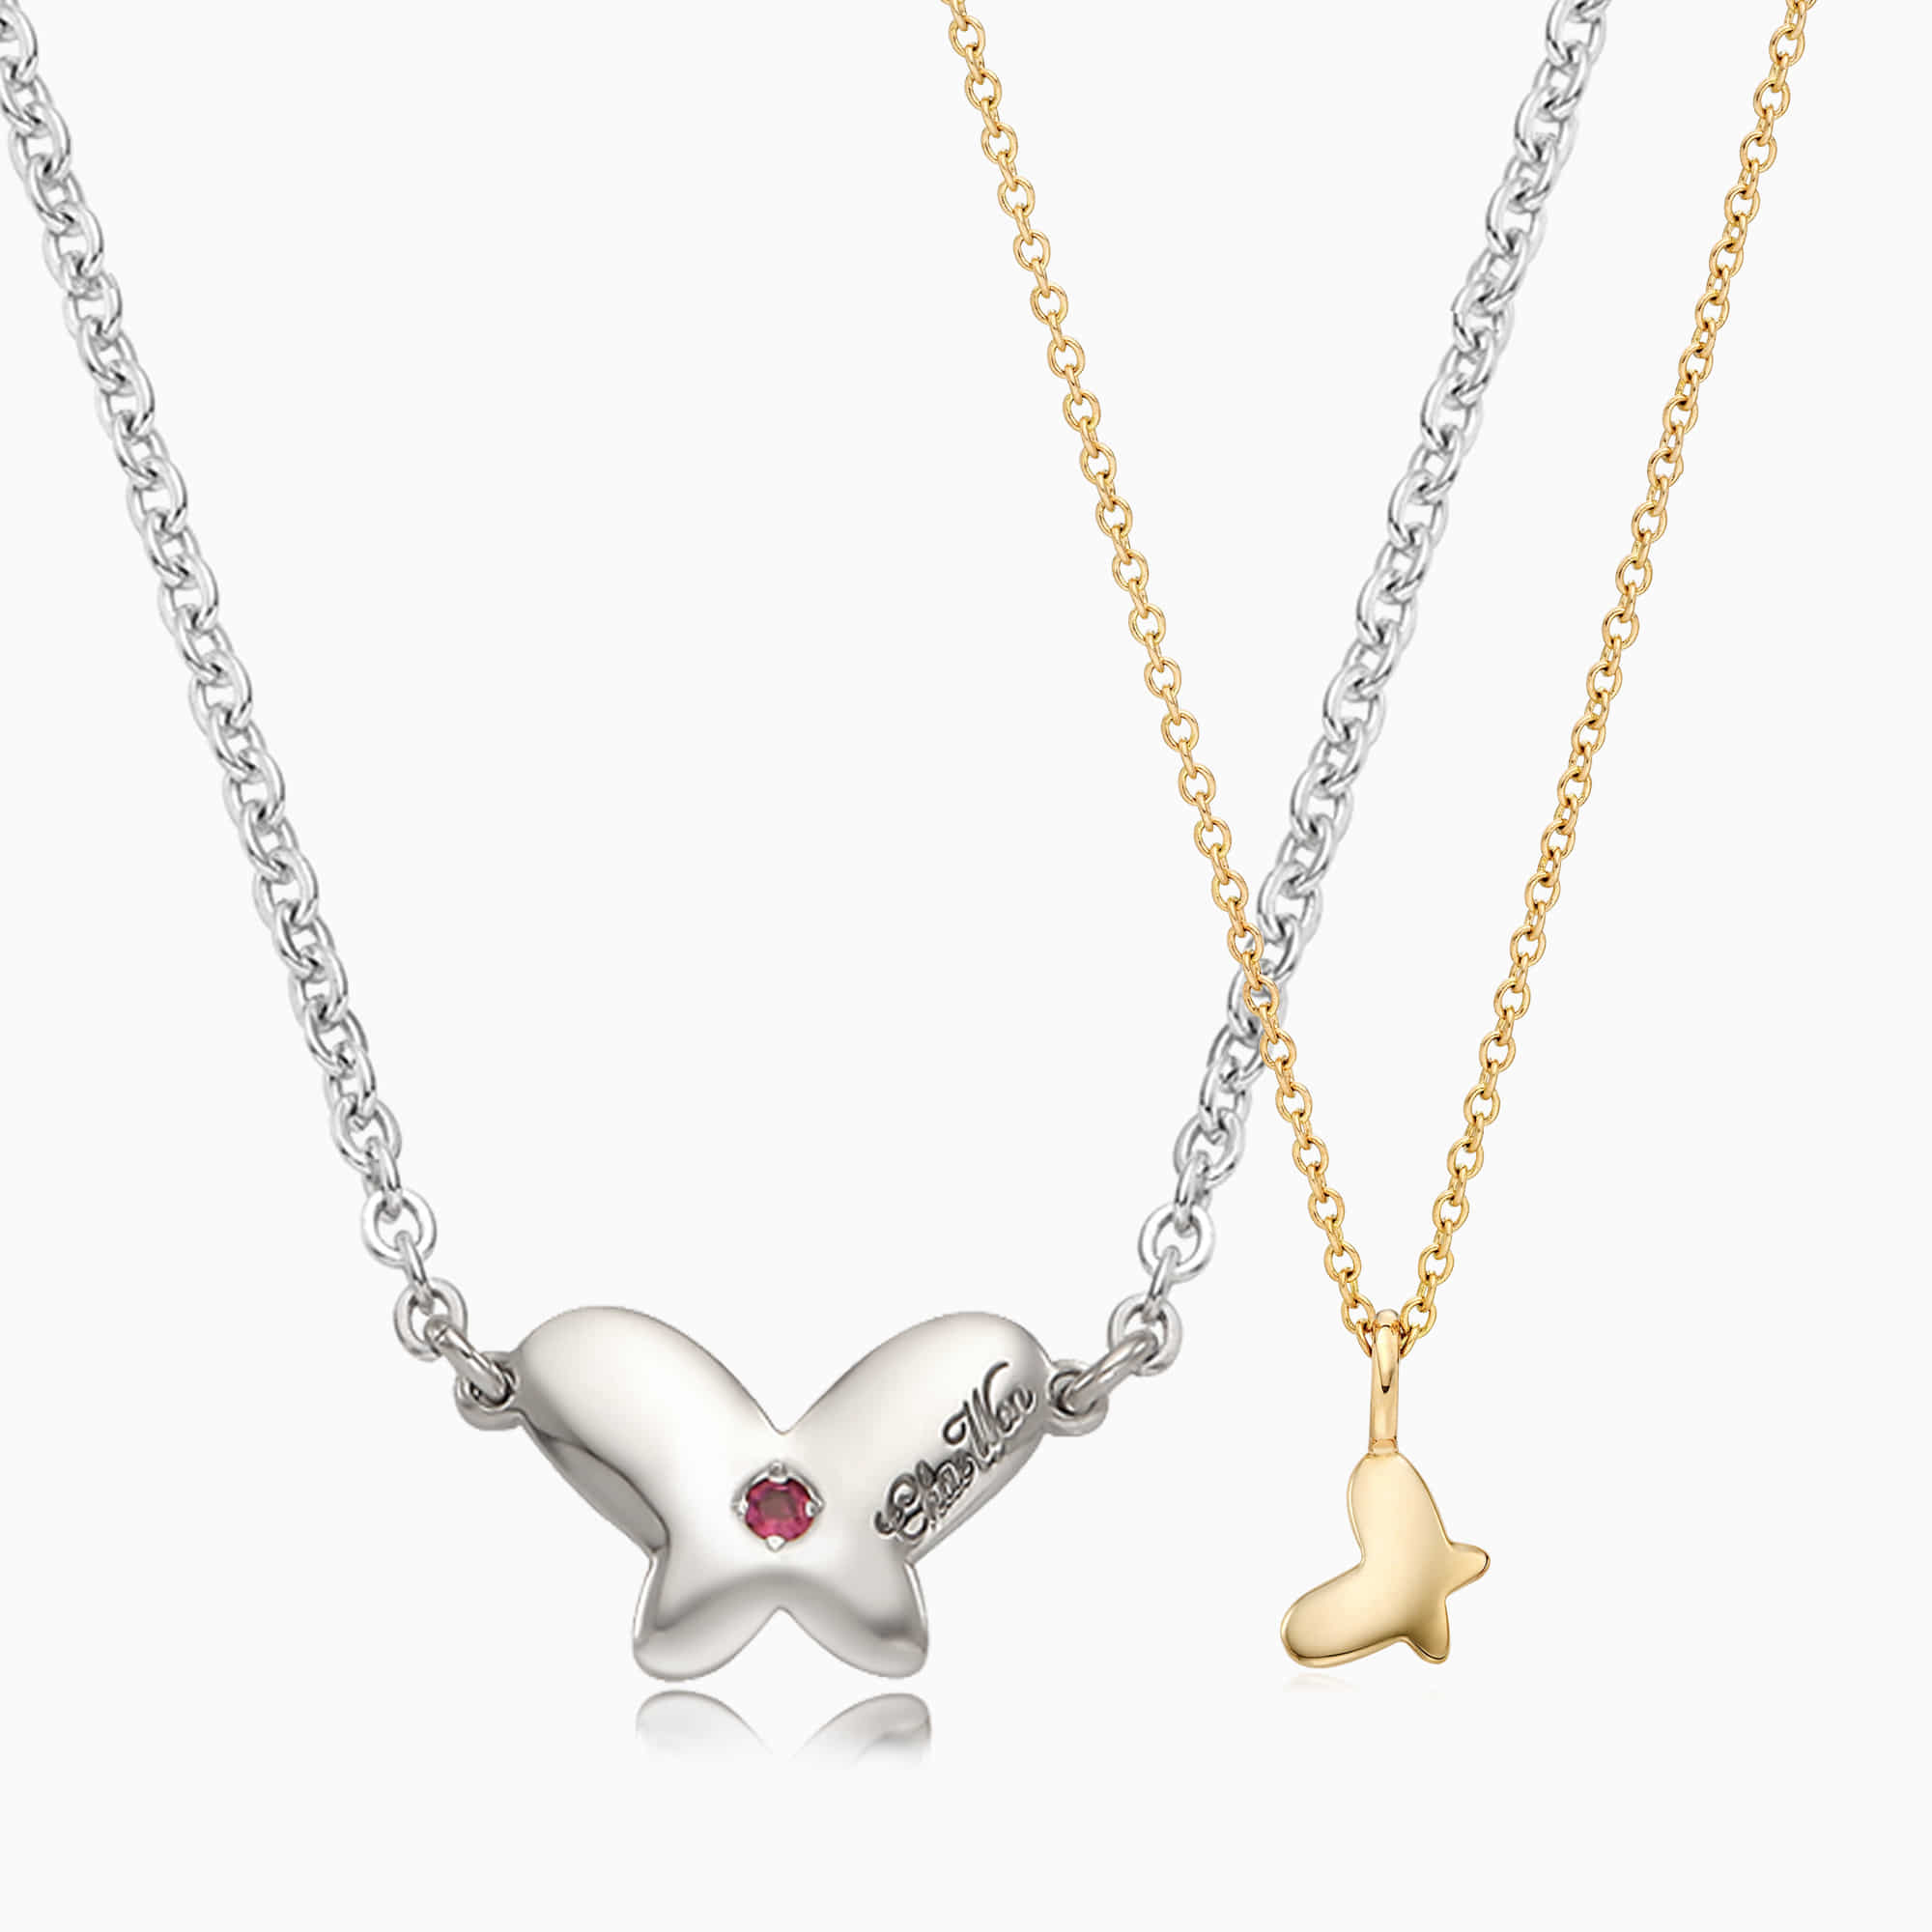 [With My Child] Silver/14K/18K Butterfly Necklace